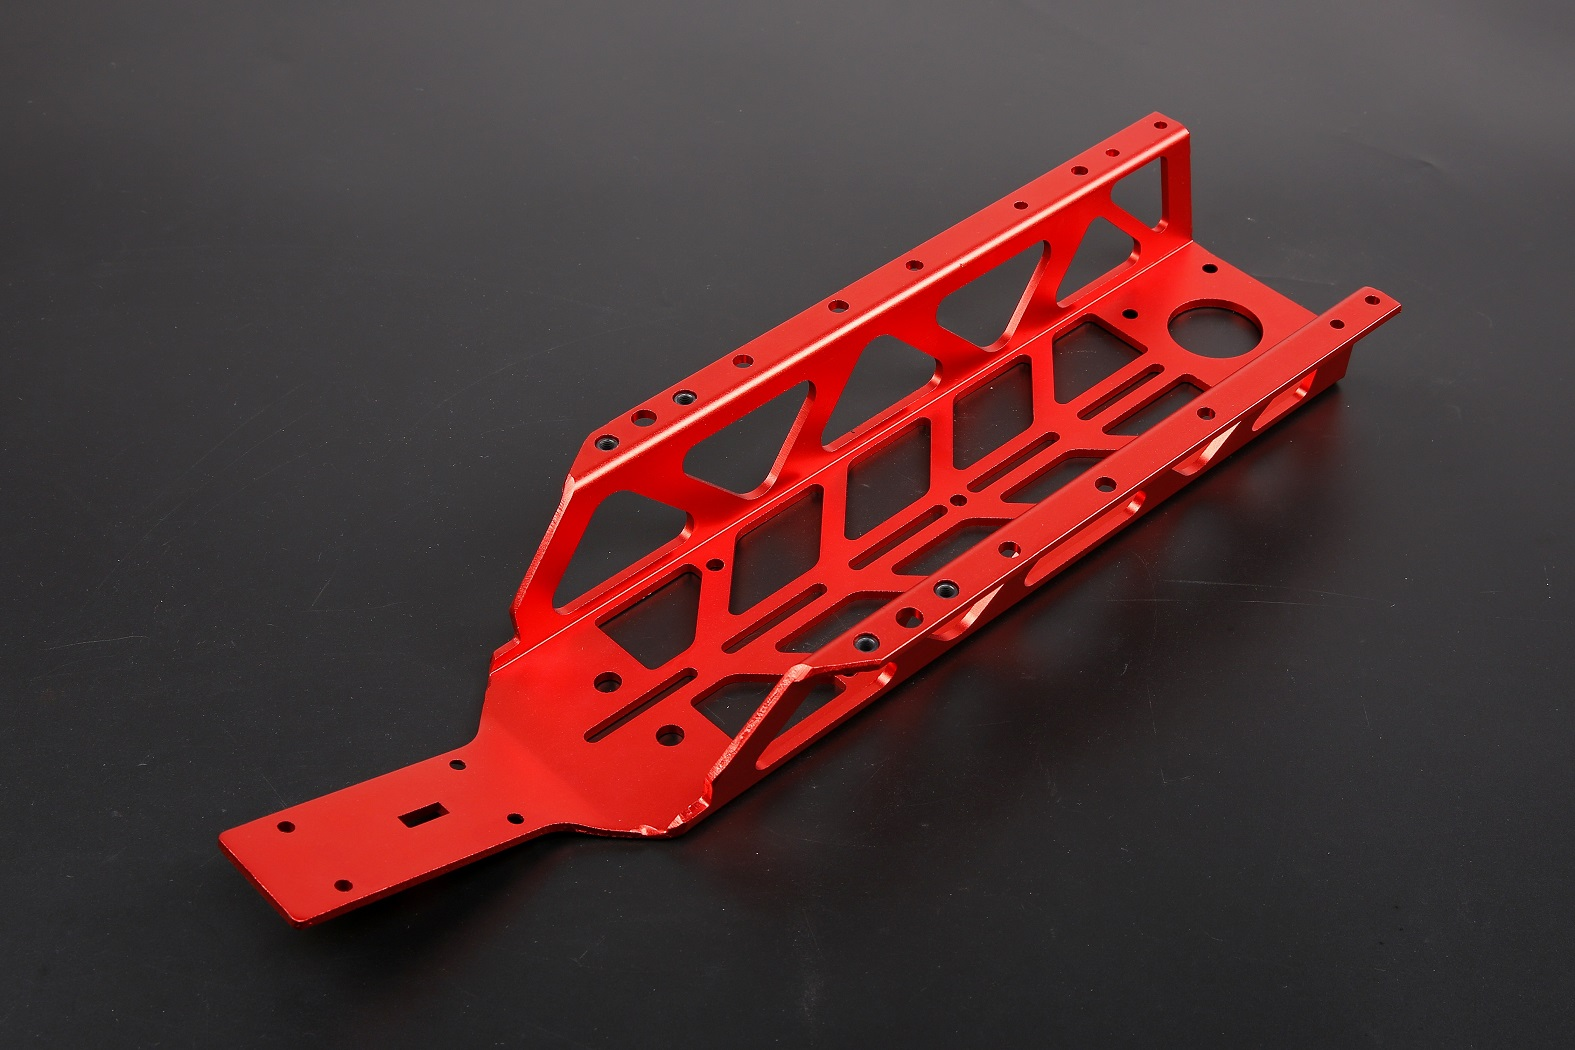 ROVAN 1/5 RC Car Upgrade Parts Baja CNC Steal Light Hollow Chassis Main Frame Chassis For HPI KM Baja 5B SS 5T 5SC main pump combination for gtb 4 wheel hydraulic brake set fit for 1 5 rc car hpi baja 5b ss